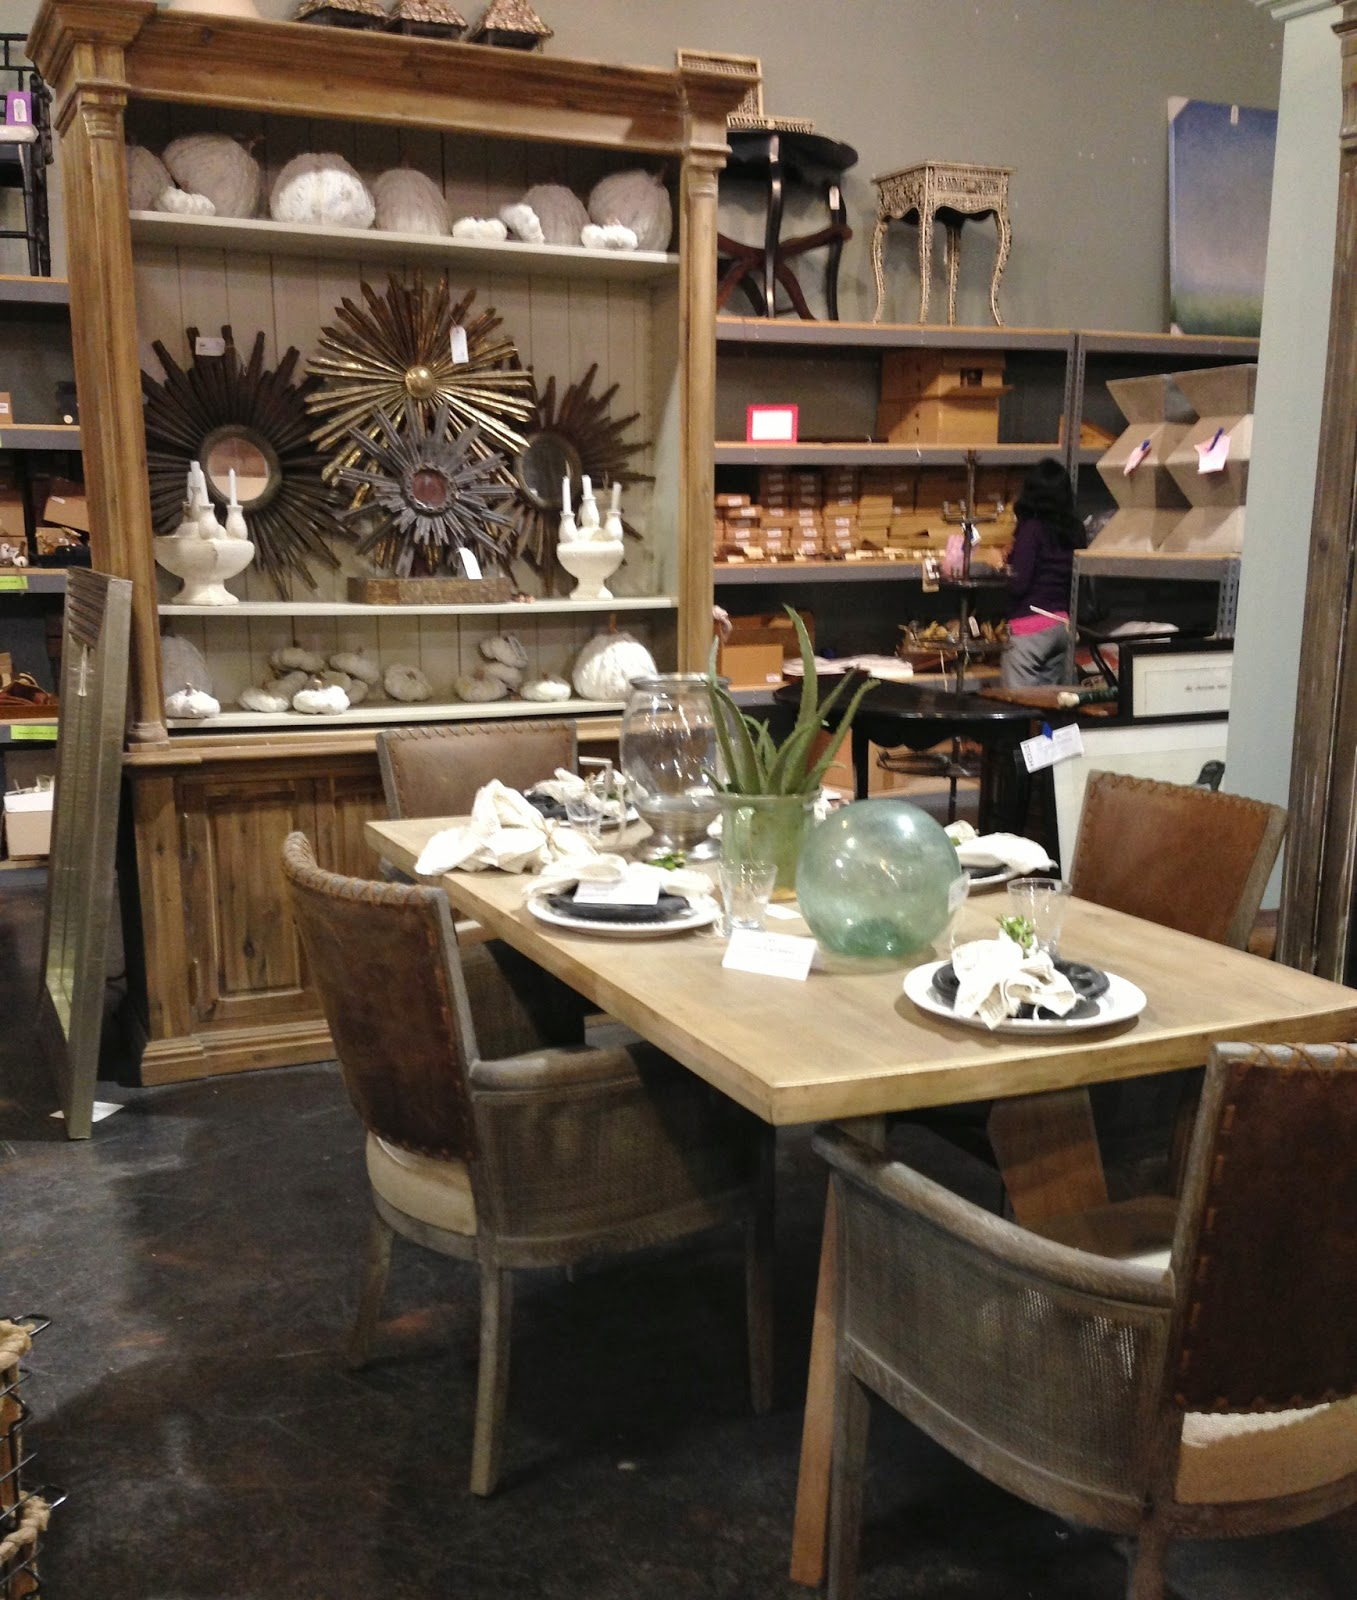 Dfw Furniture Gallery: My Visit To The Wisteria Outlet In Dallas!